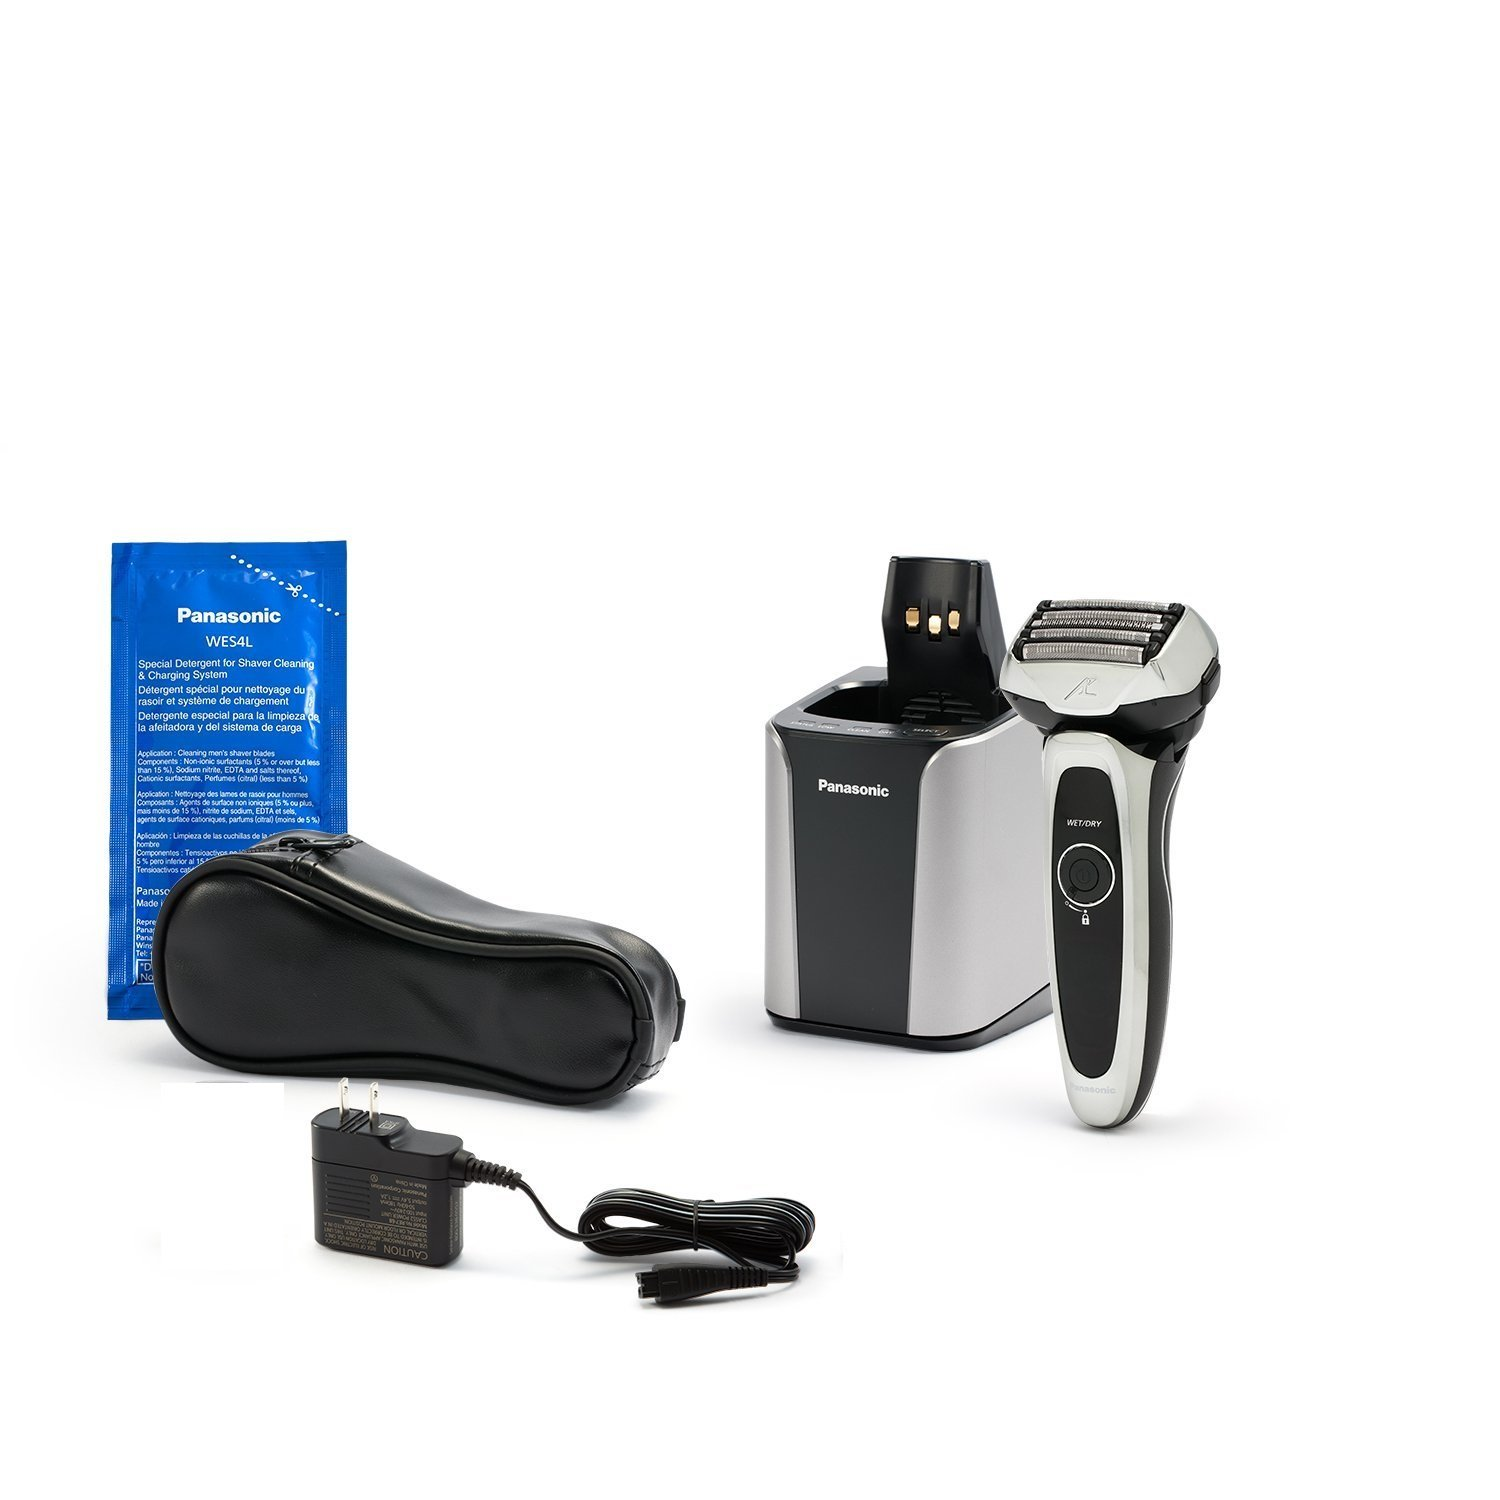 Panasonic ES-LV95-S Arc5 Electric Razor, Men's 5-Blade Cordless with Shave Sensor Technology and Wet/Dry Convenience, Premium Automatic Clean & Charge Station Included by Panasonic (Image #4)